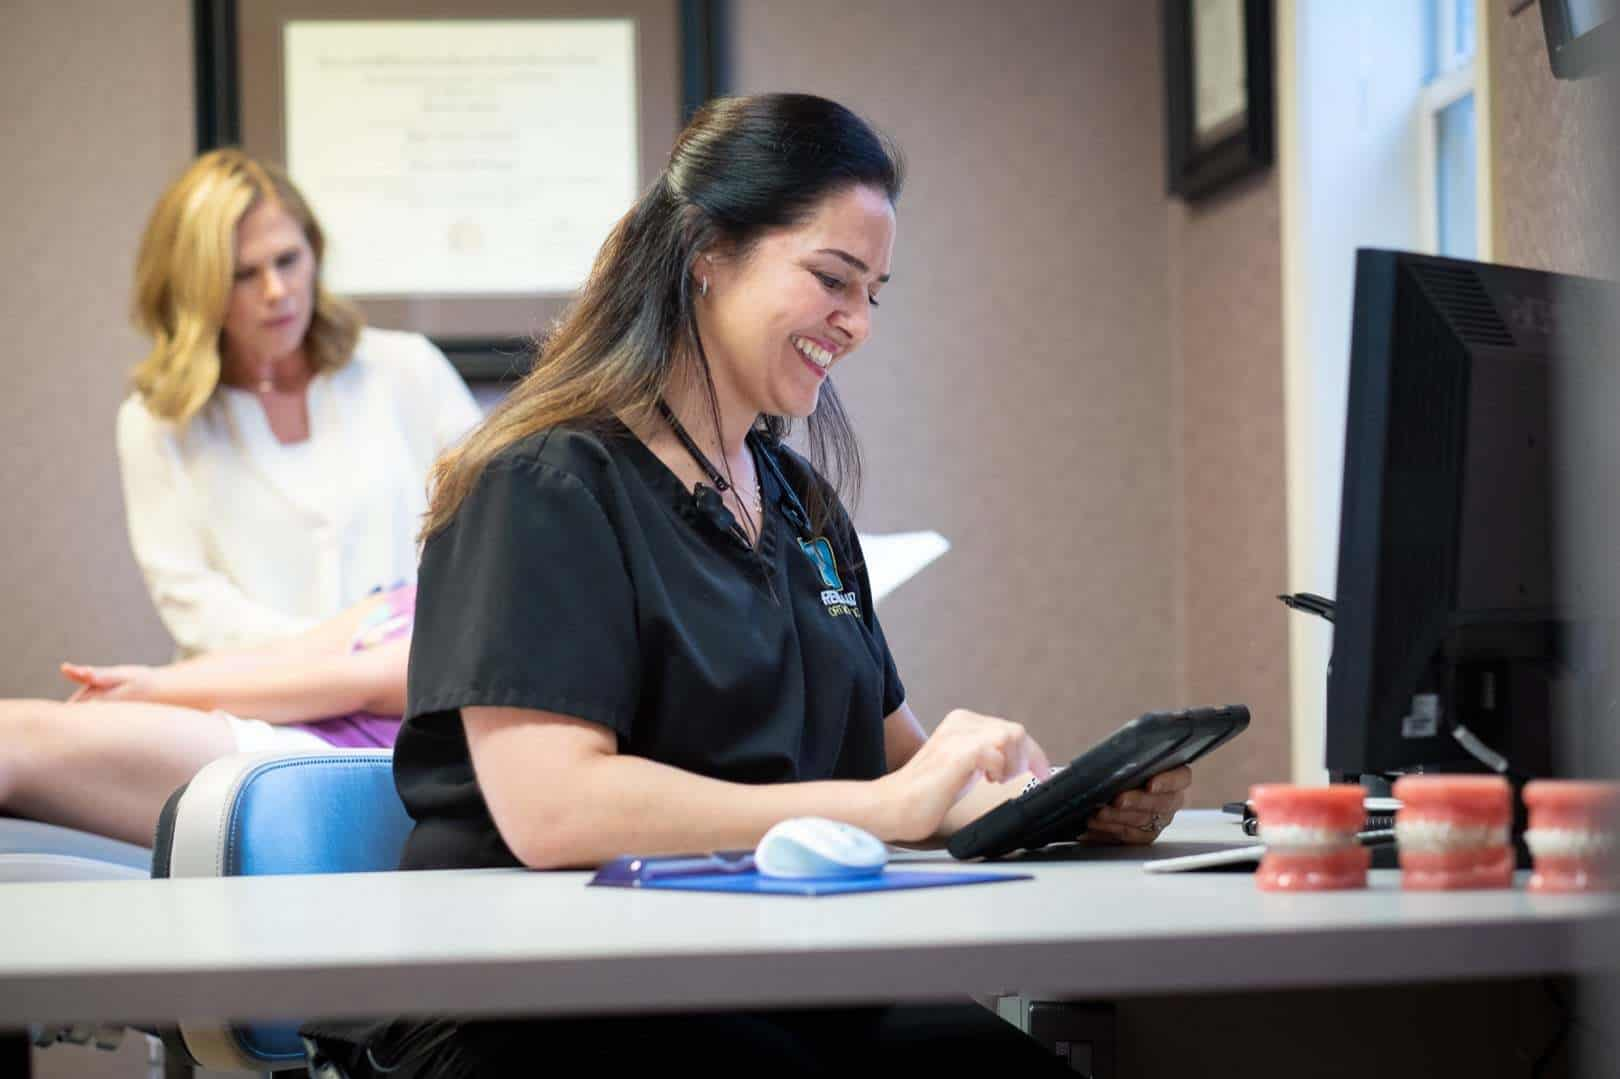 Reuland Orthodontics Staff Candids 2018 14 - Orthodontics, Invisalign and Braces